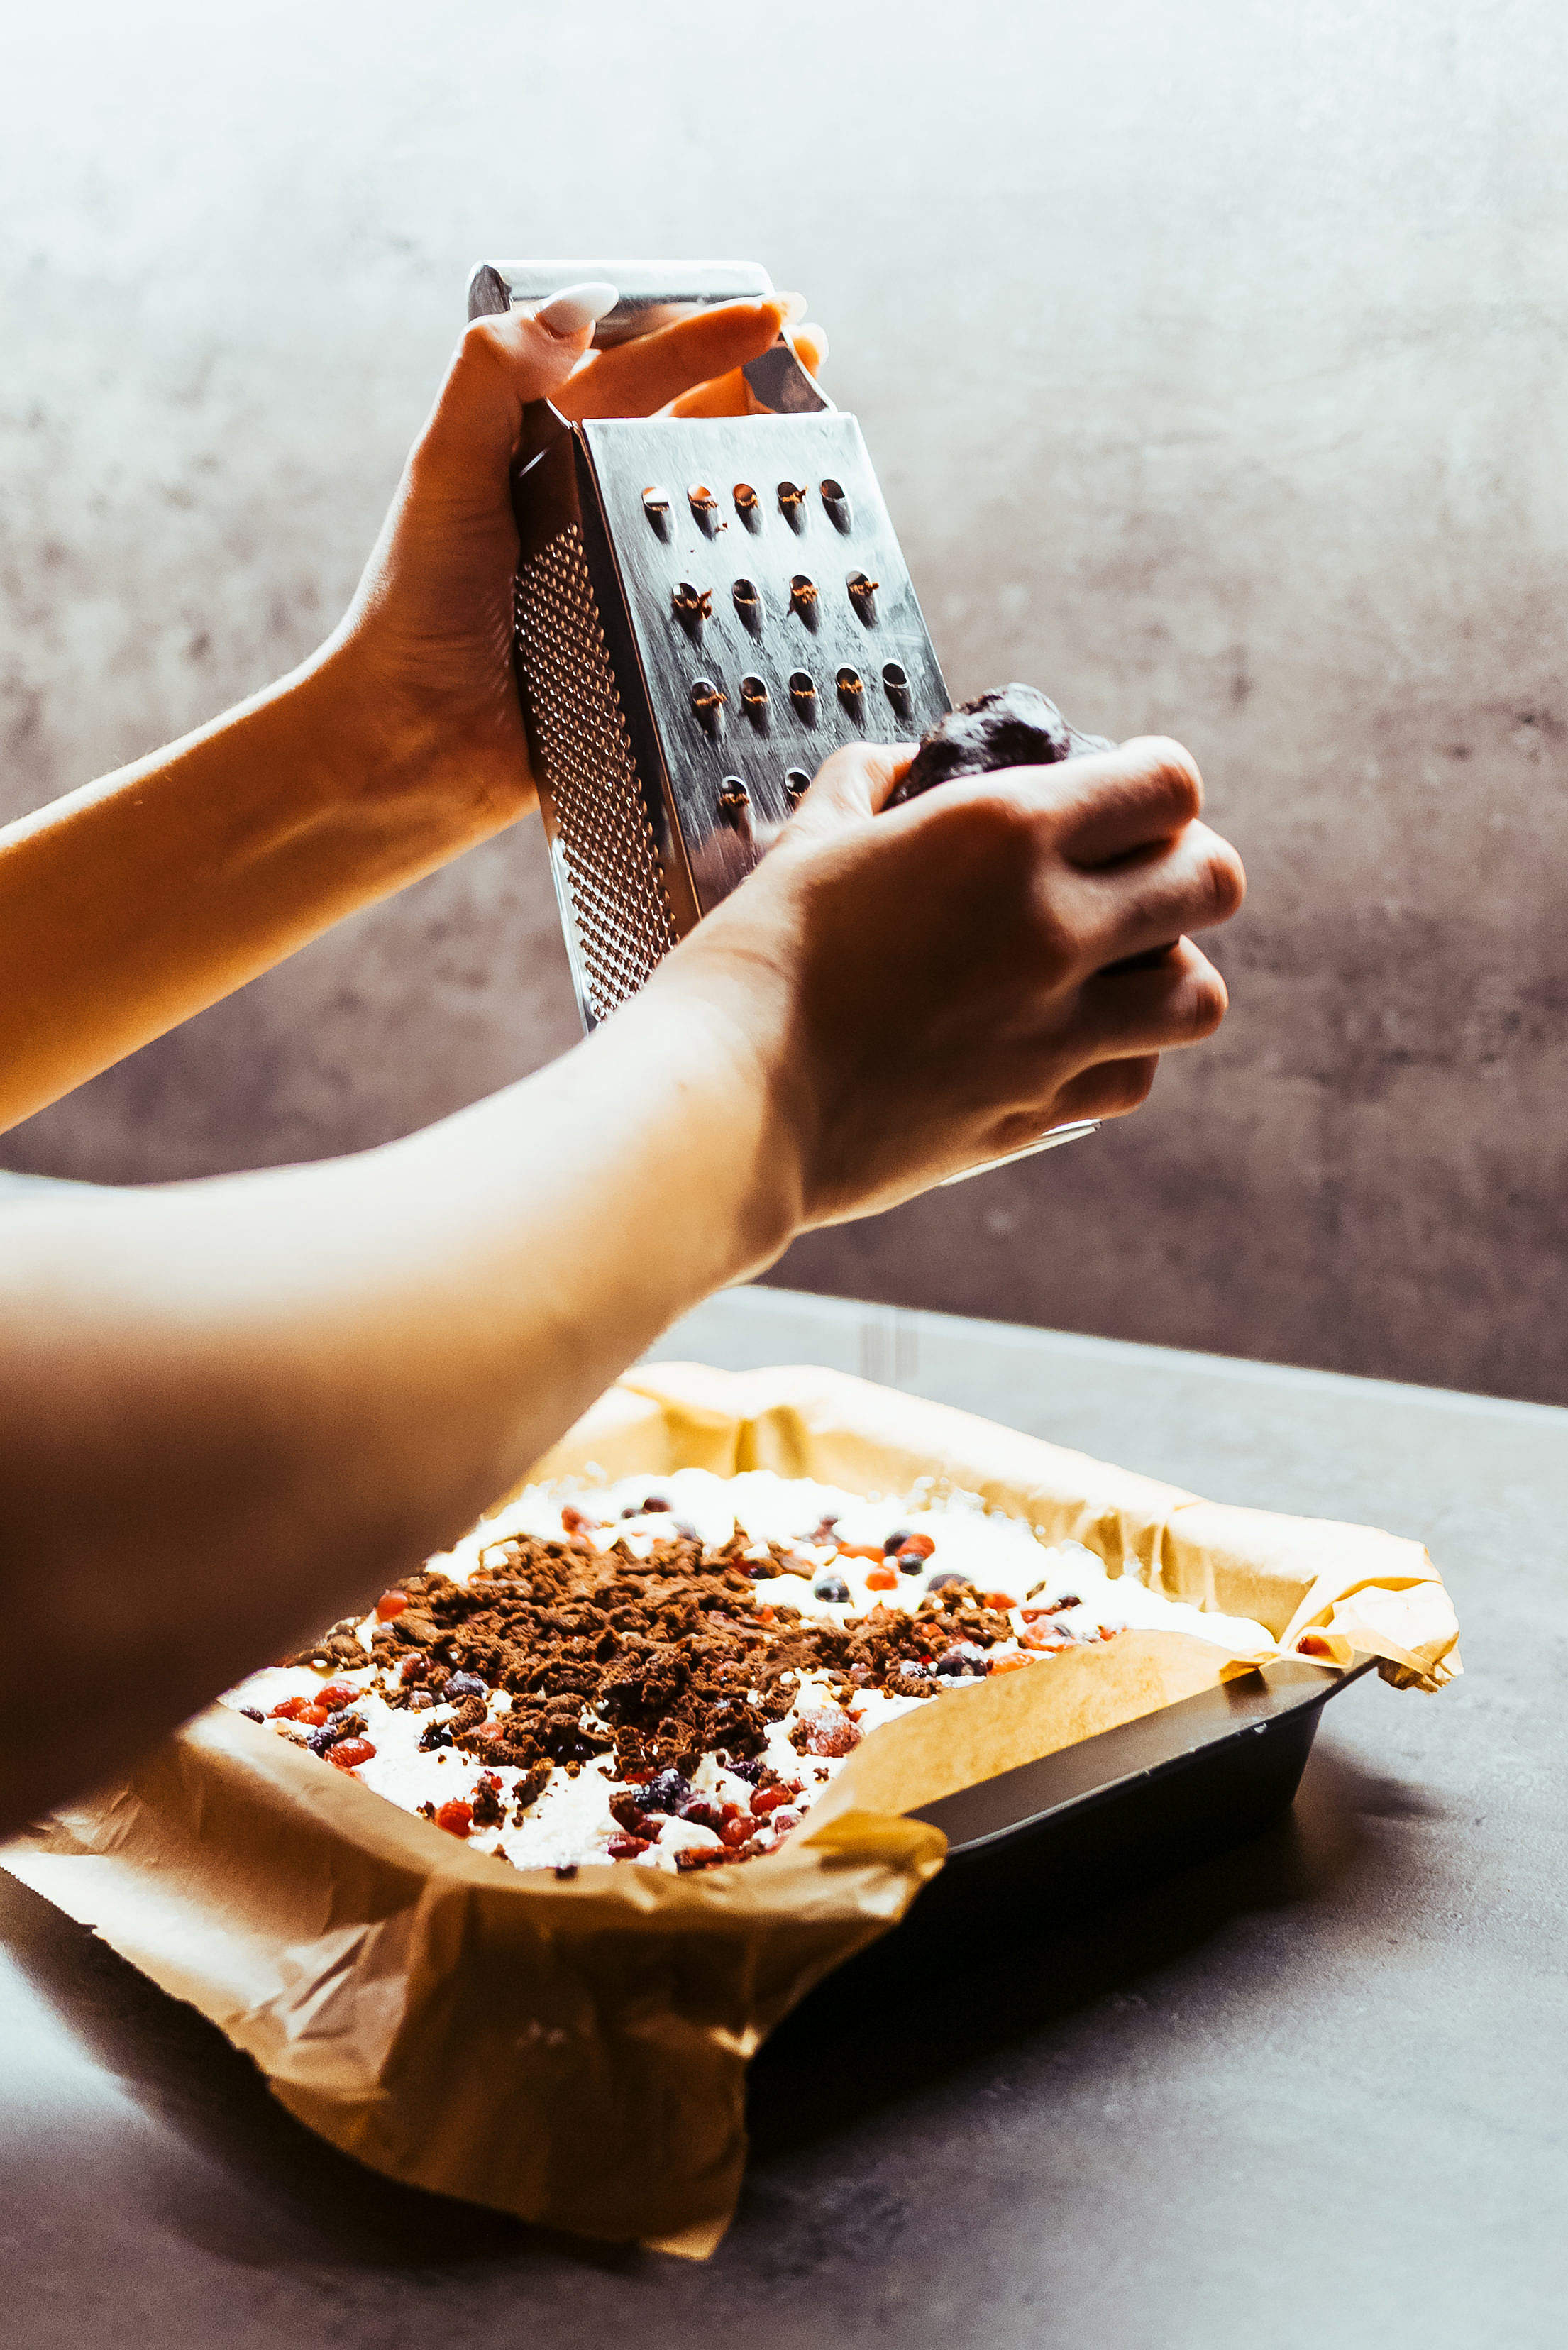 Download Finishing Fruit Cake with Chocolate Streusel Free Stock Photo